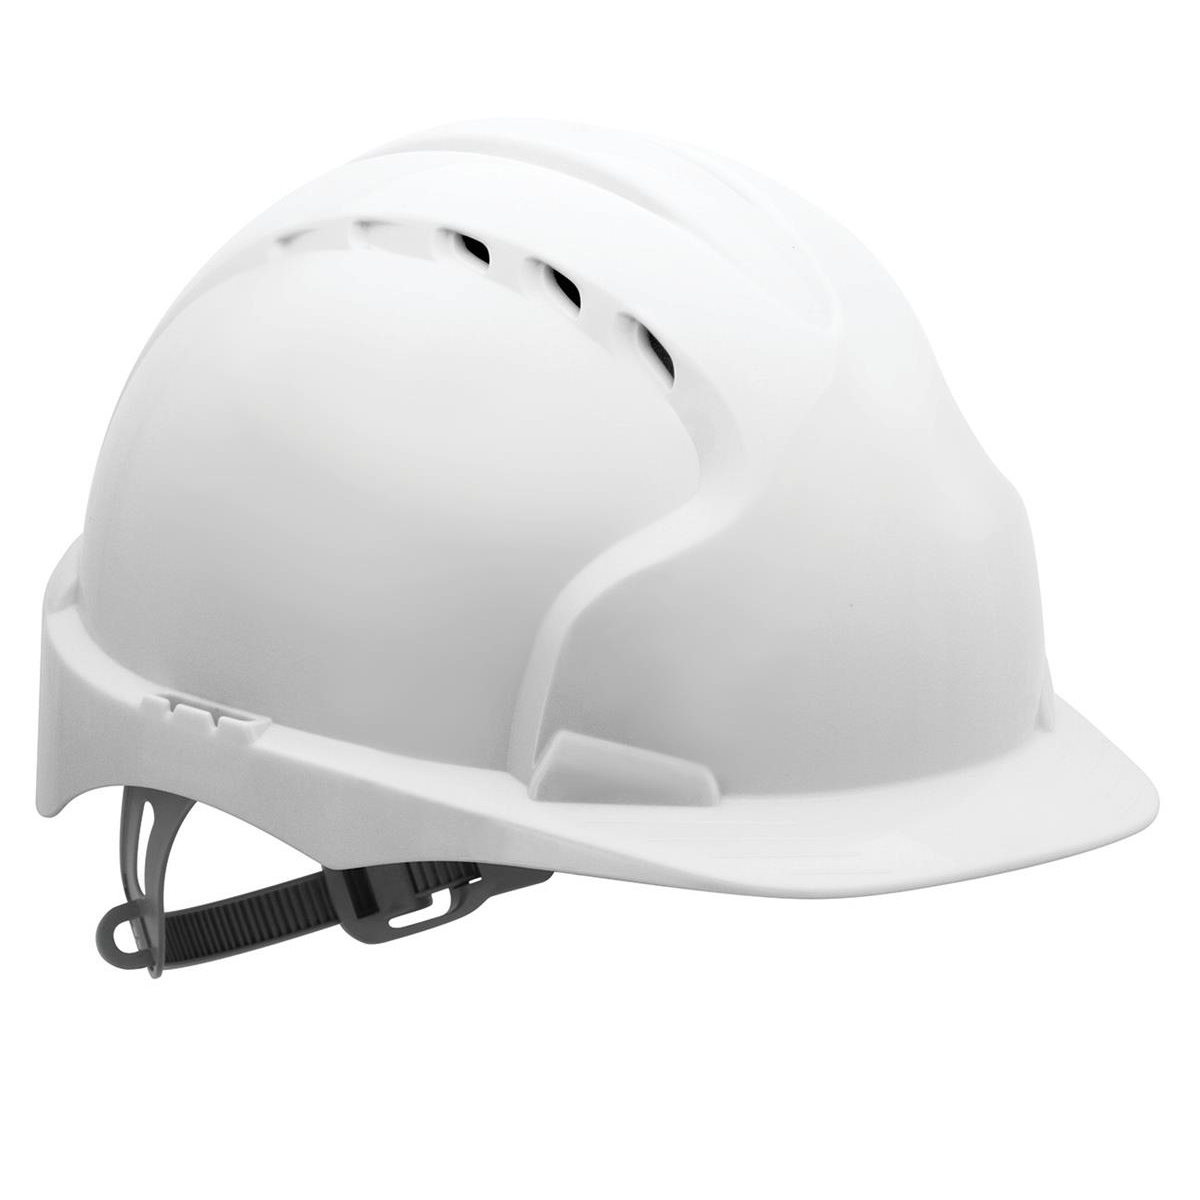 Safety helmets JSP EVO2 Safety Helmet HDPE 6-point Polyethylene Harness EN397 Standard White Ref AJF030-000-100